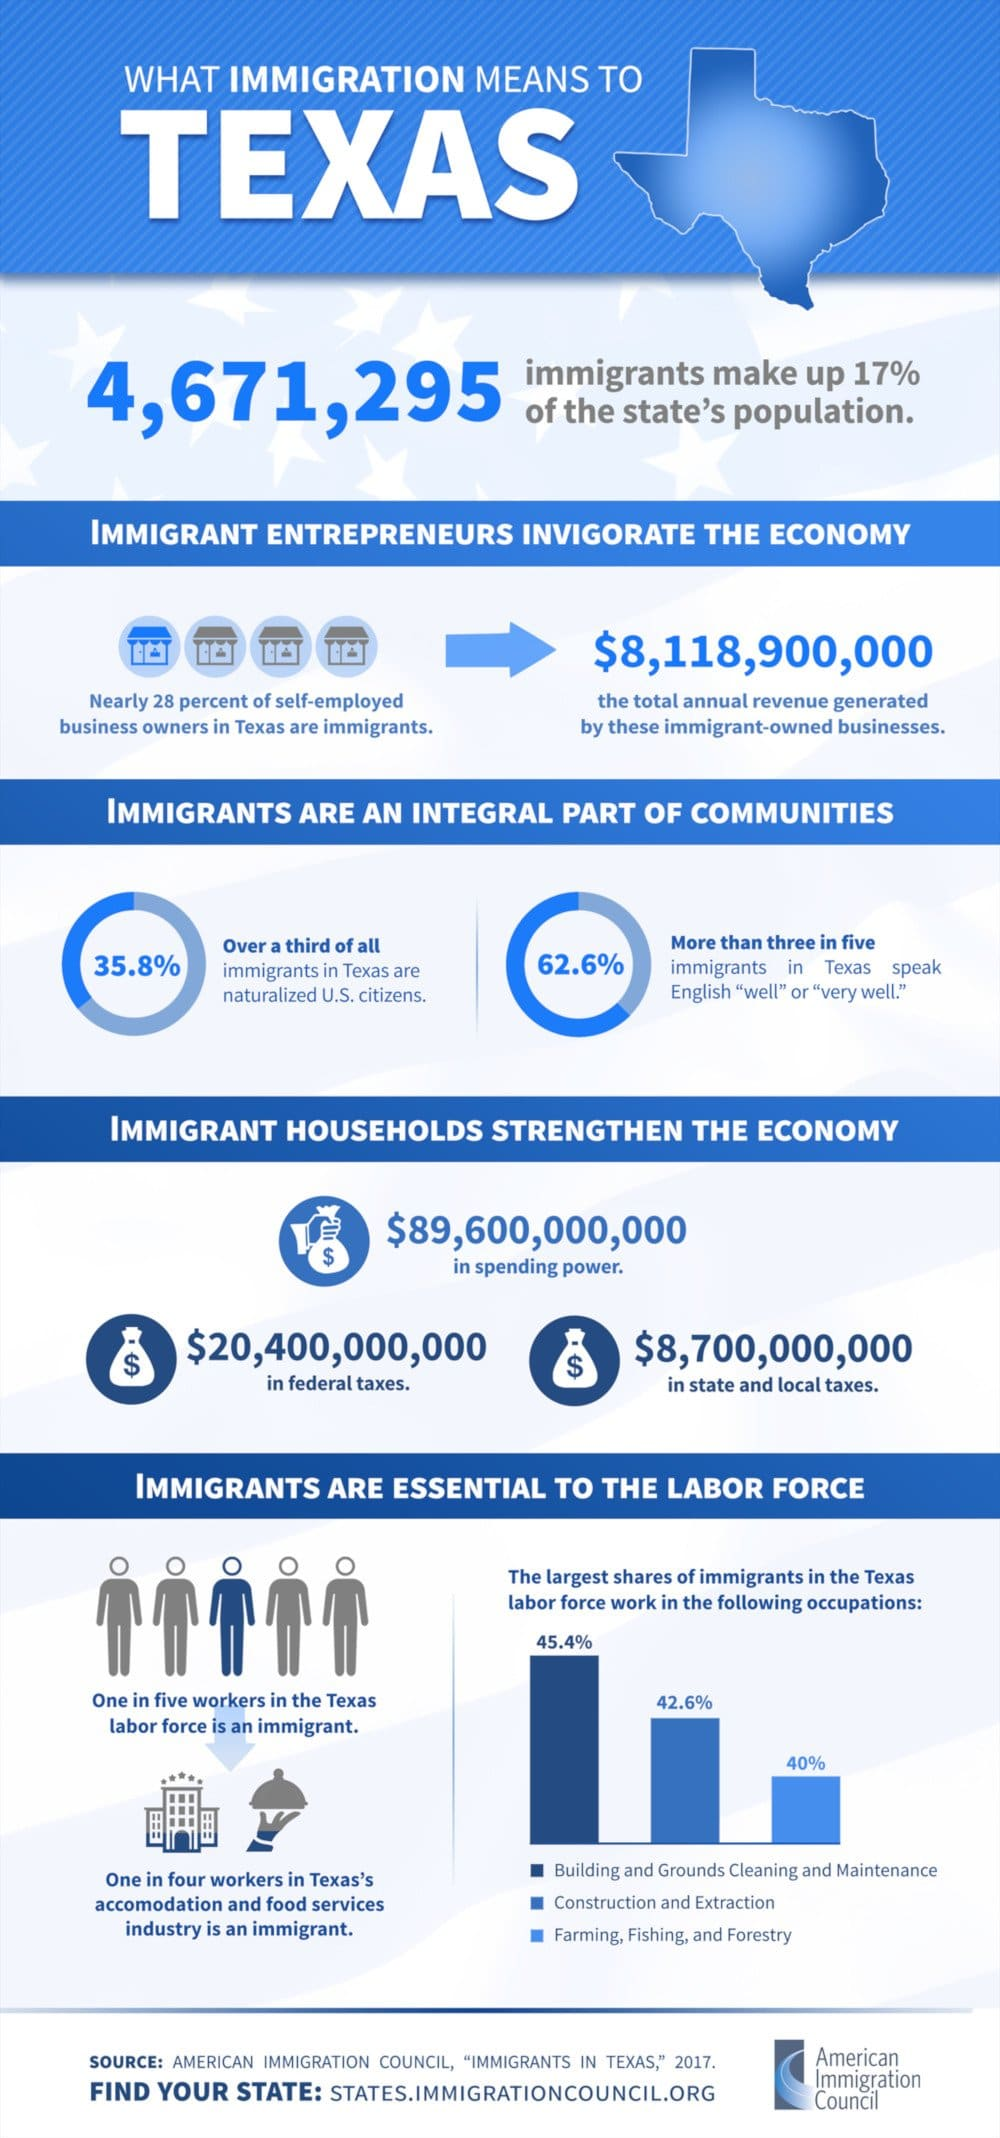 Texas Immigration Infographic